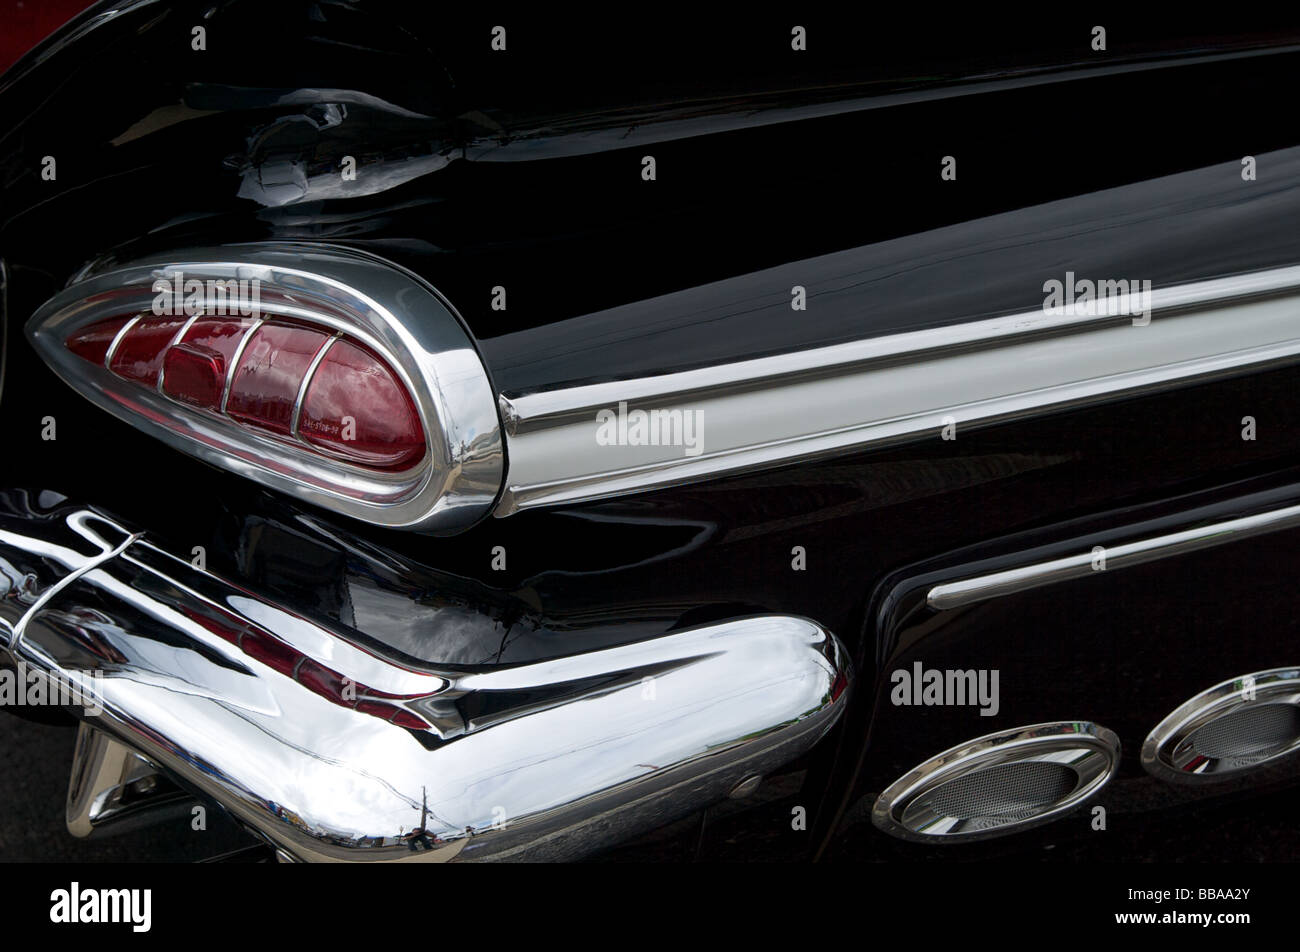 Antique chevy impala tail light with exhaust ports and black paint and chrome bumper stock